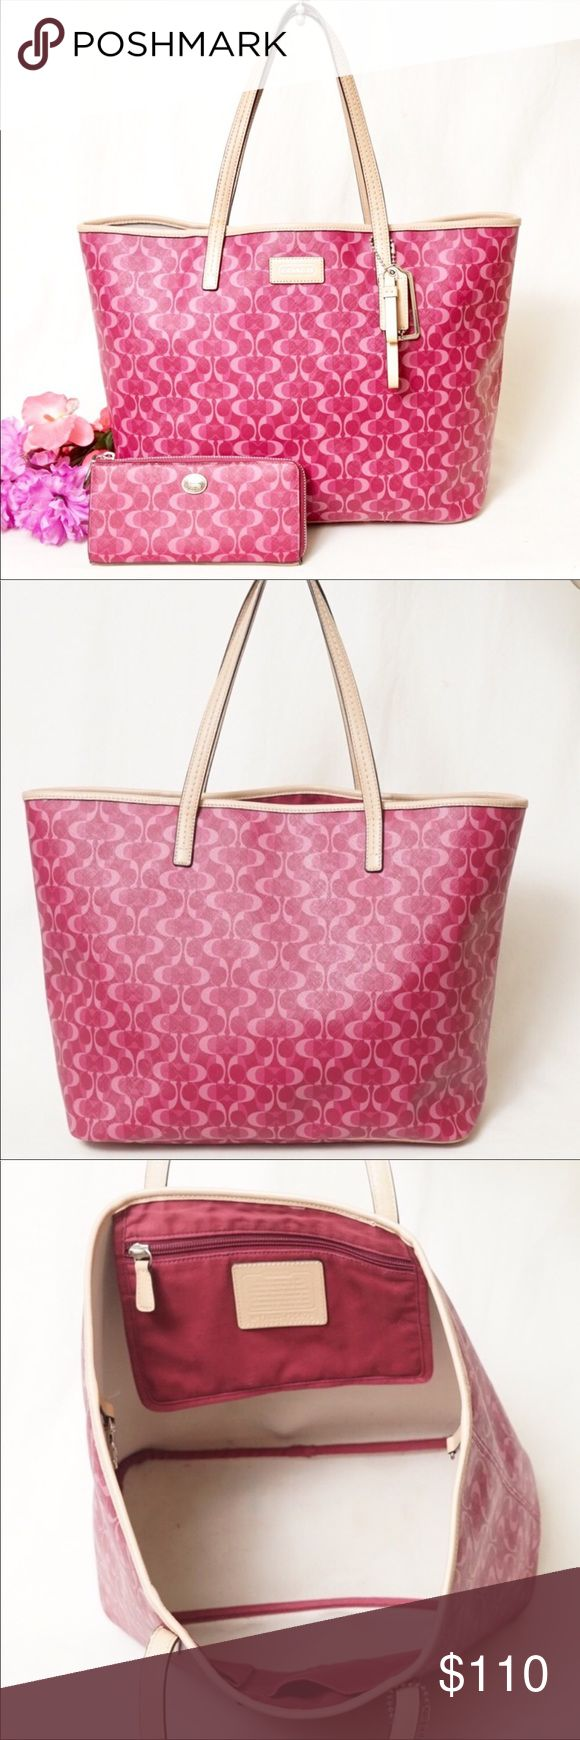 56 Off Coach Handbags Coach Mini Toiletry Or Make Up Kit From Erin - Gorgeous coach park dream c leather tote bag only